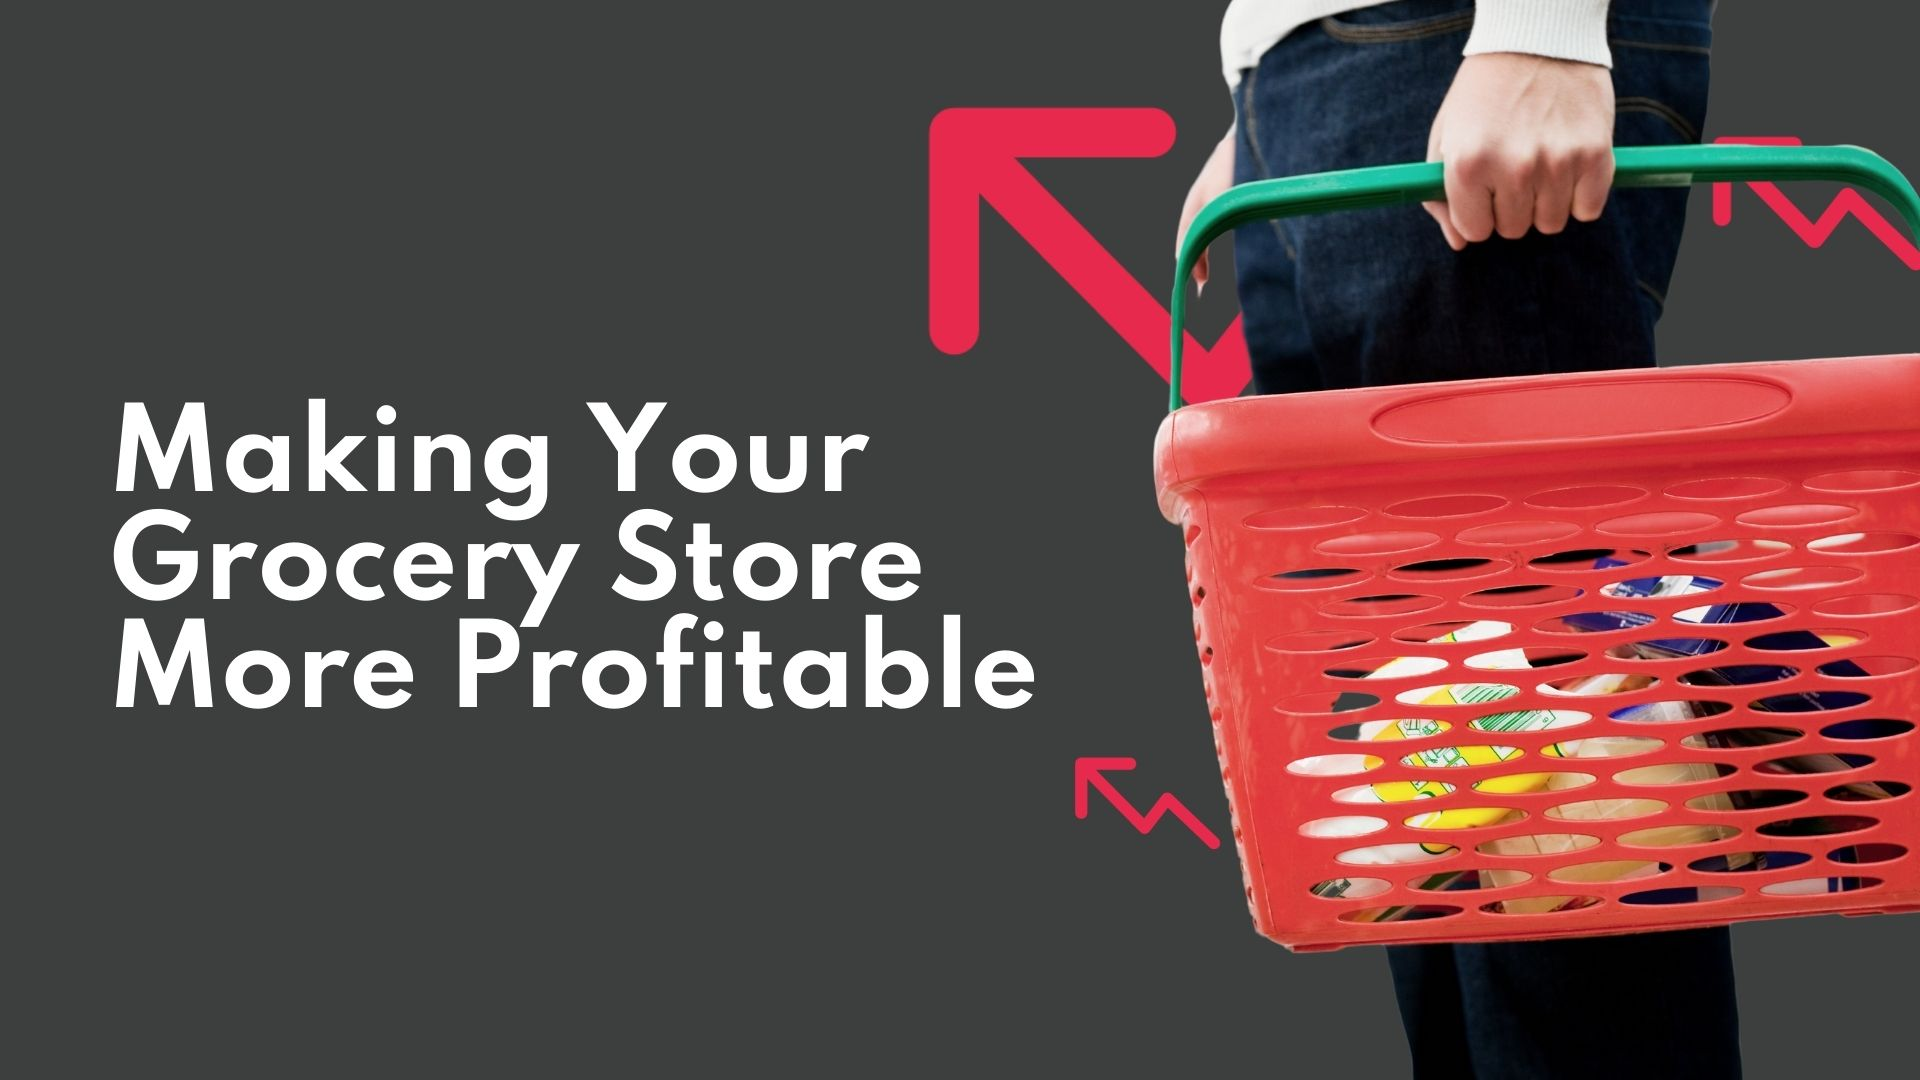 5 Tips for Making Your Grocery Store More Profitable